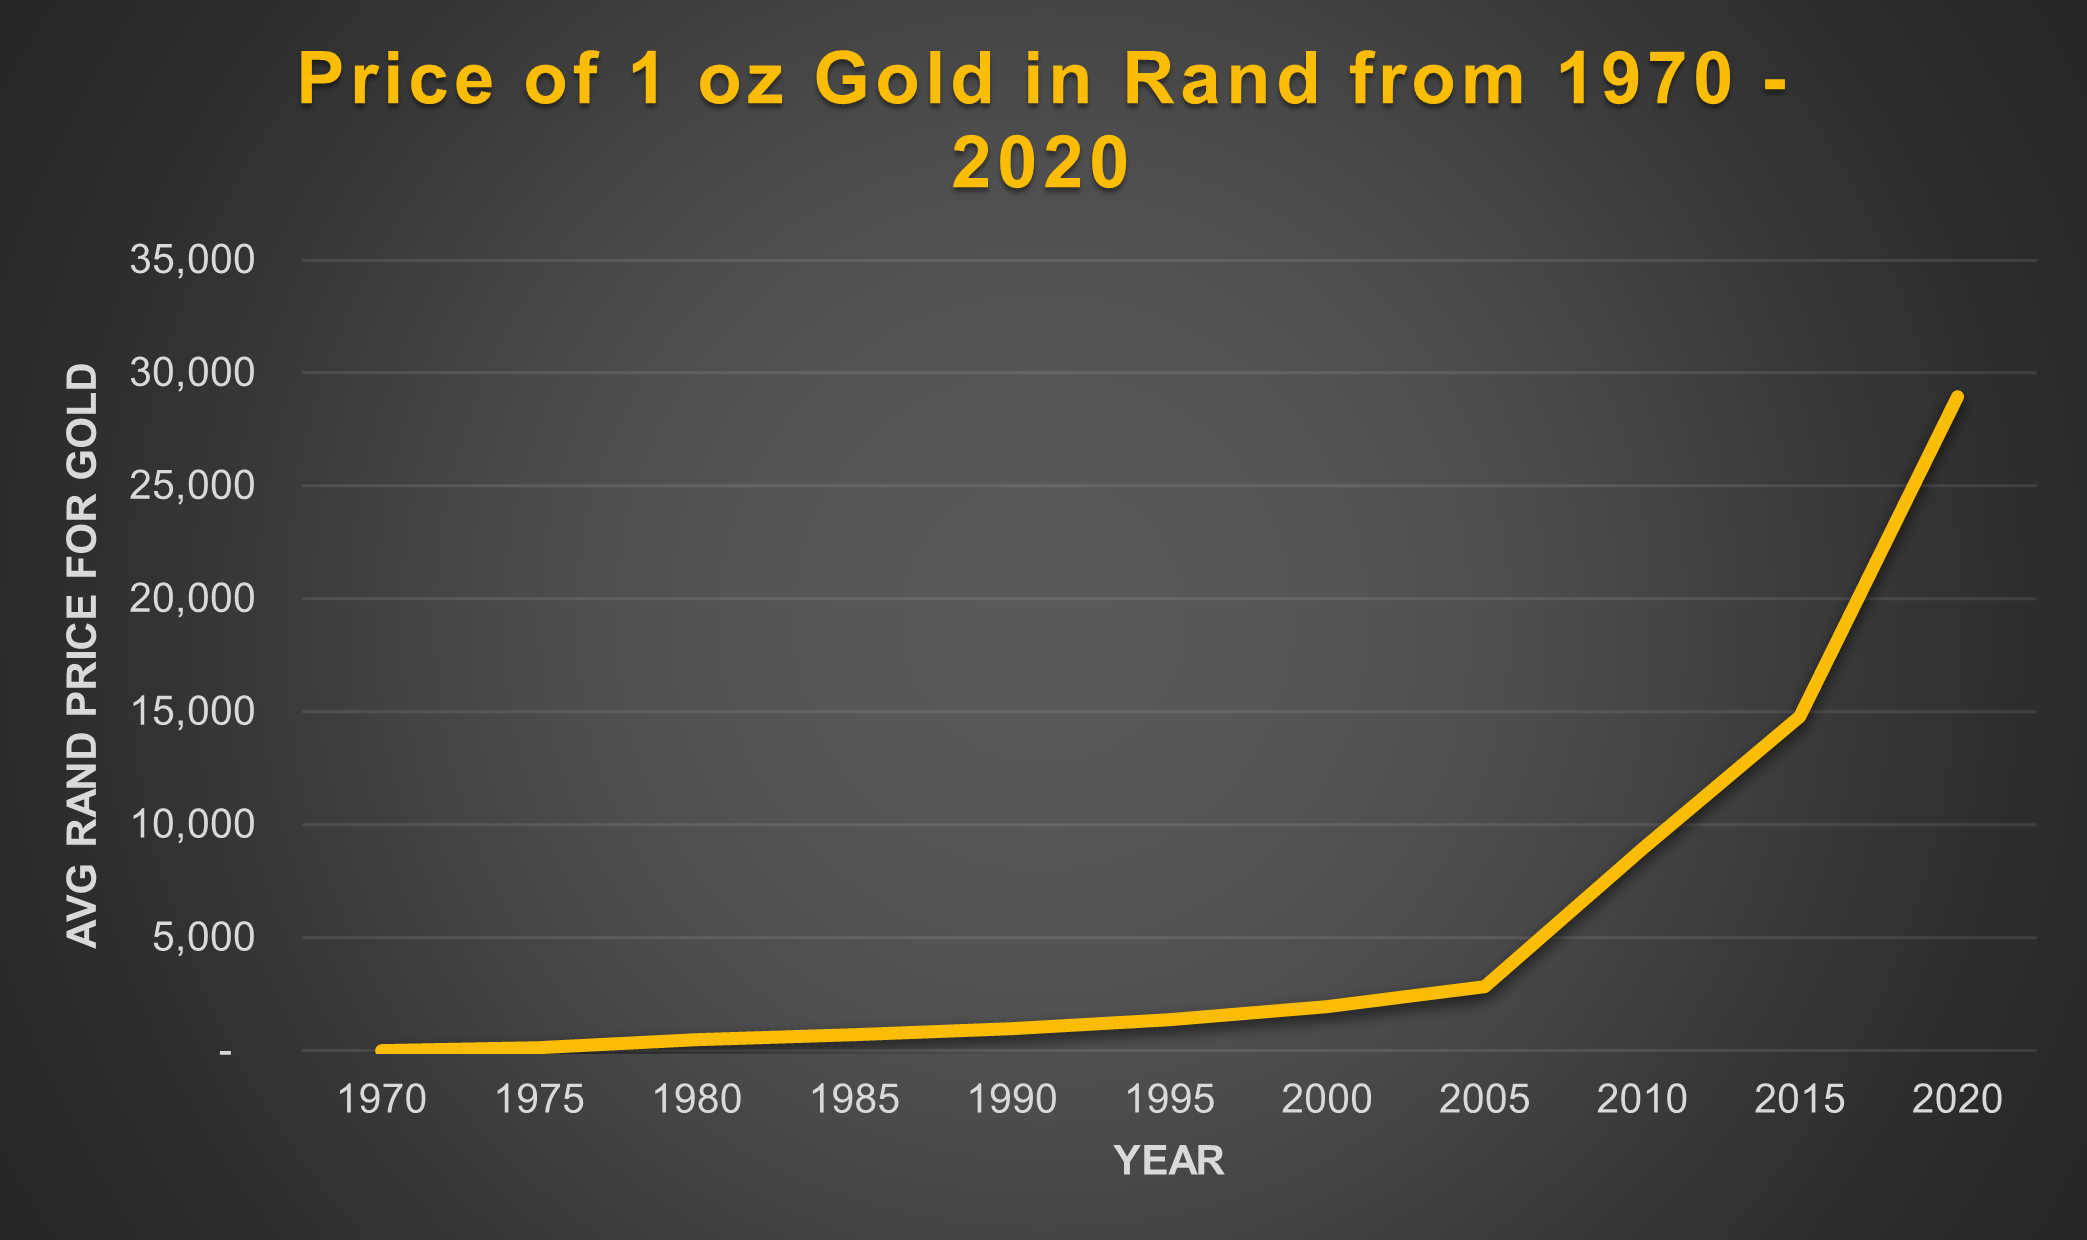 how to buy gold and silver Rand price per 1 oz gold from 1970 to 2020